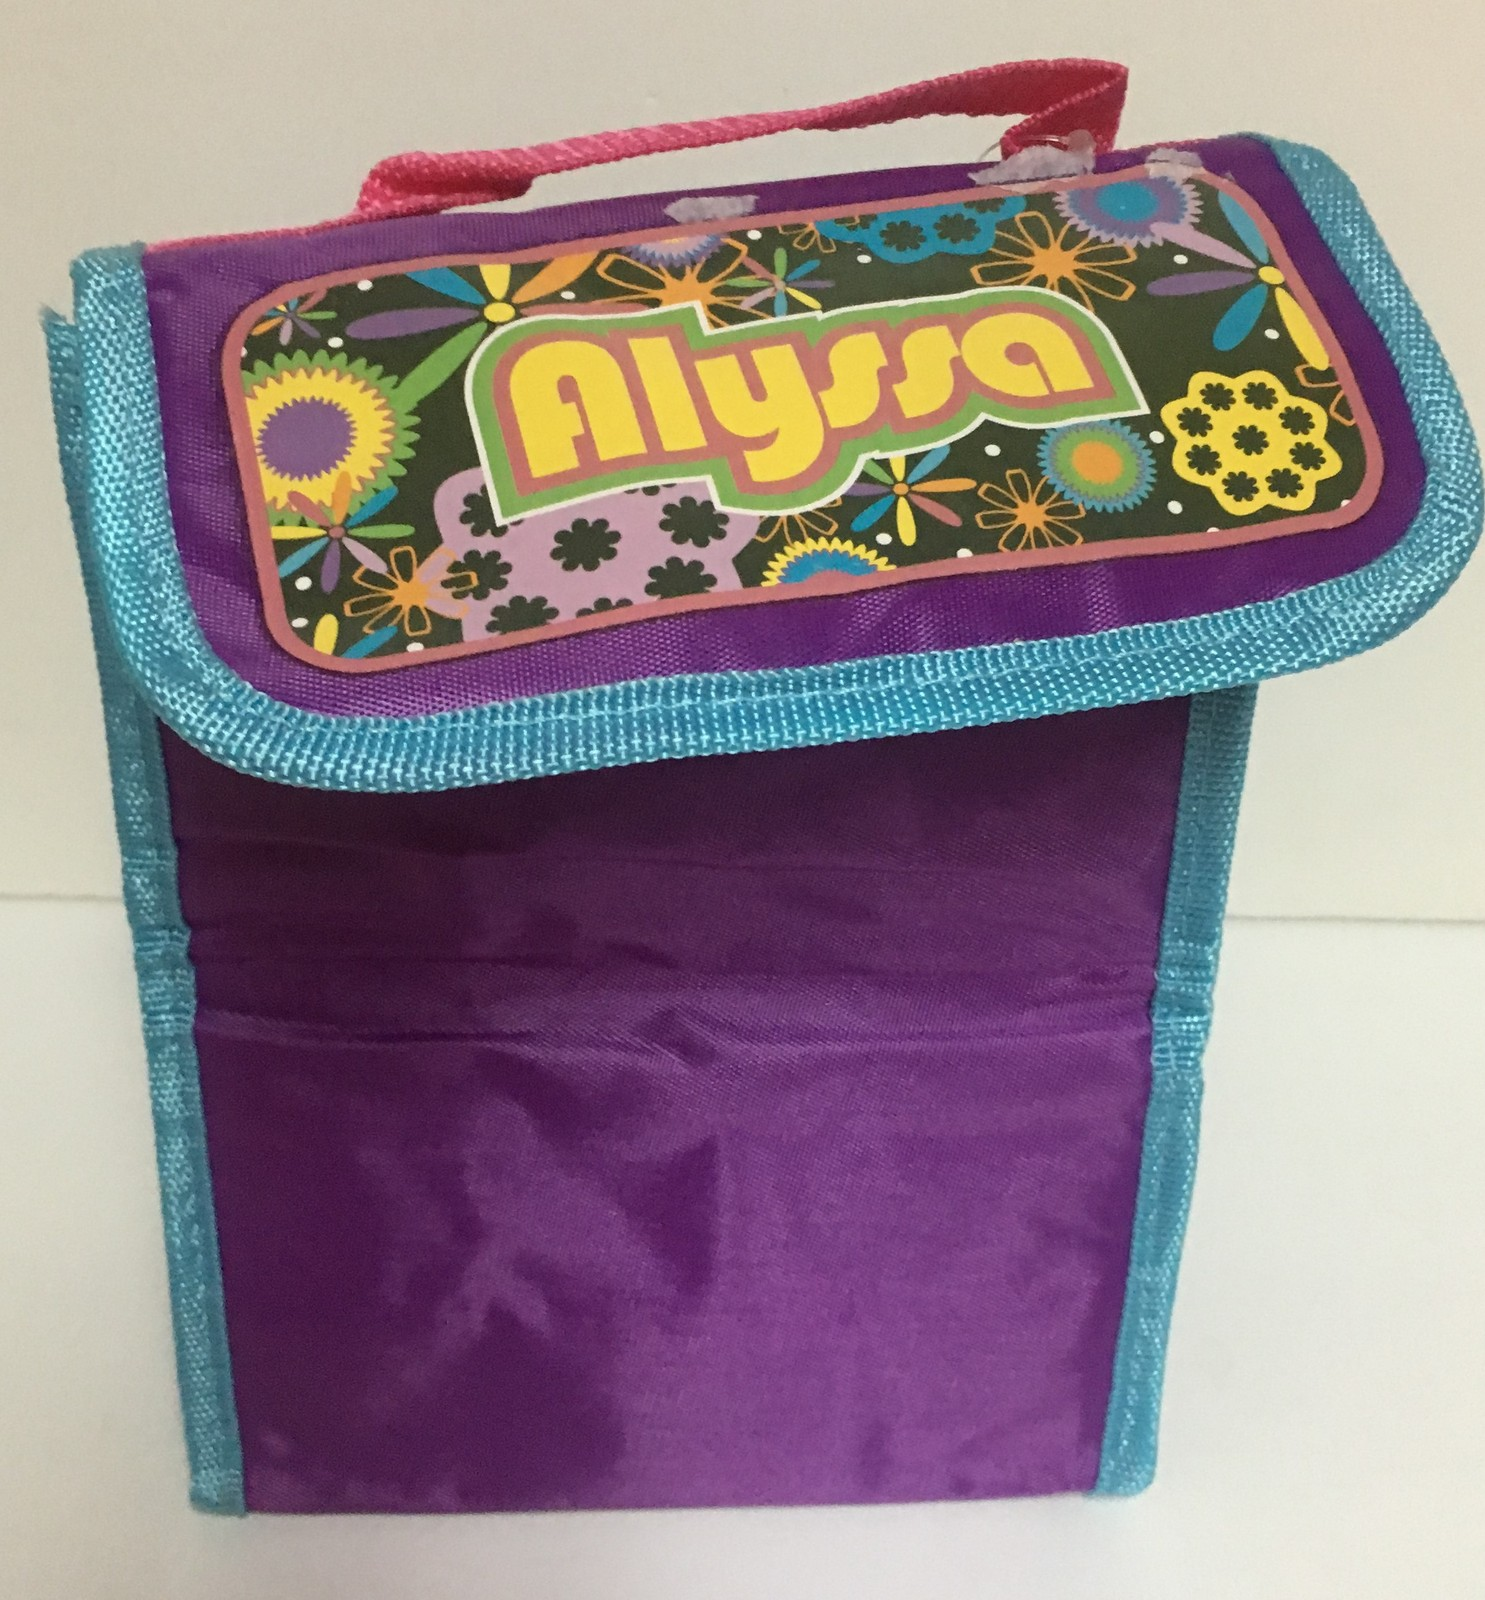 Personalized Insulated Lunch Bag Fold Up ALYSSA